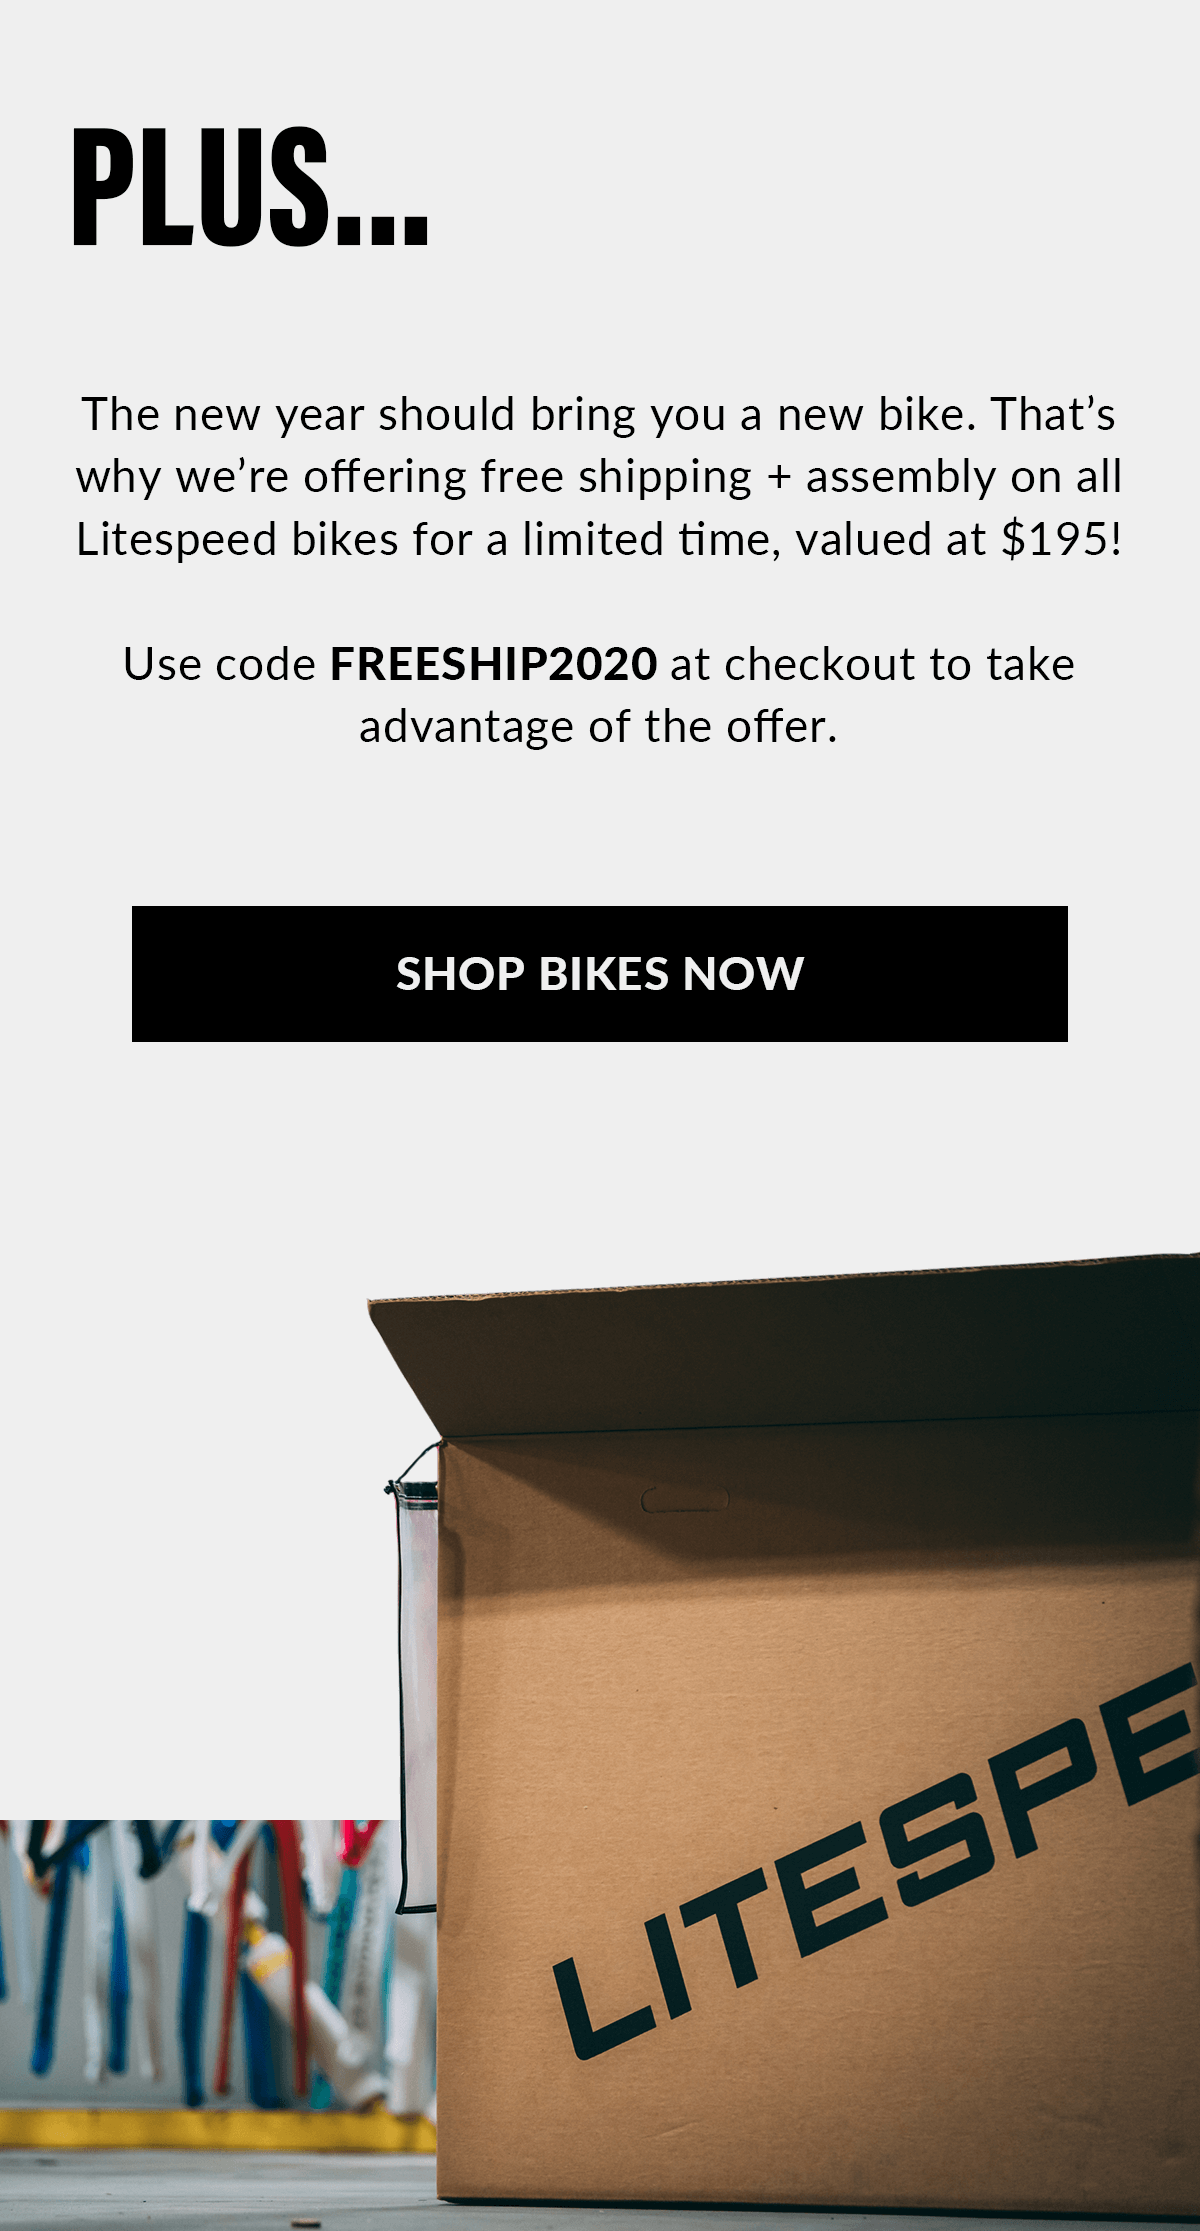 We're offering free shipping + assembly on all Litespeed bikes for a limited time, valued at $195! Use code FREESHIP2020 at checkout to take advantage of the offer.